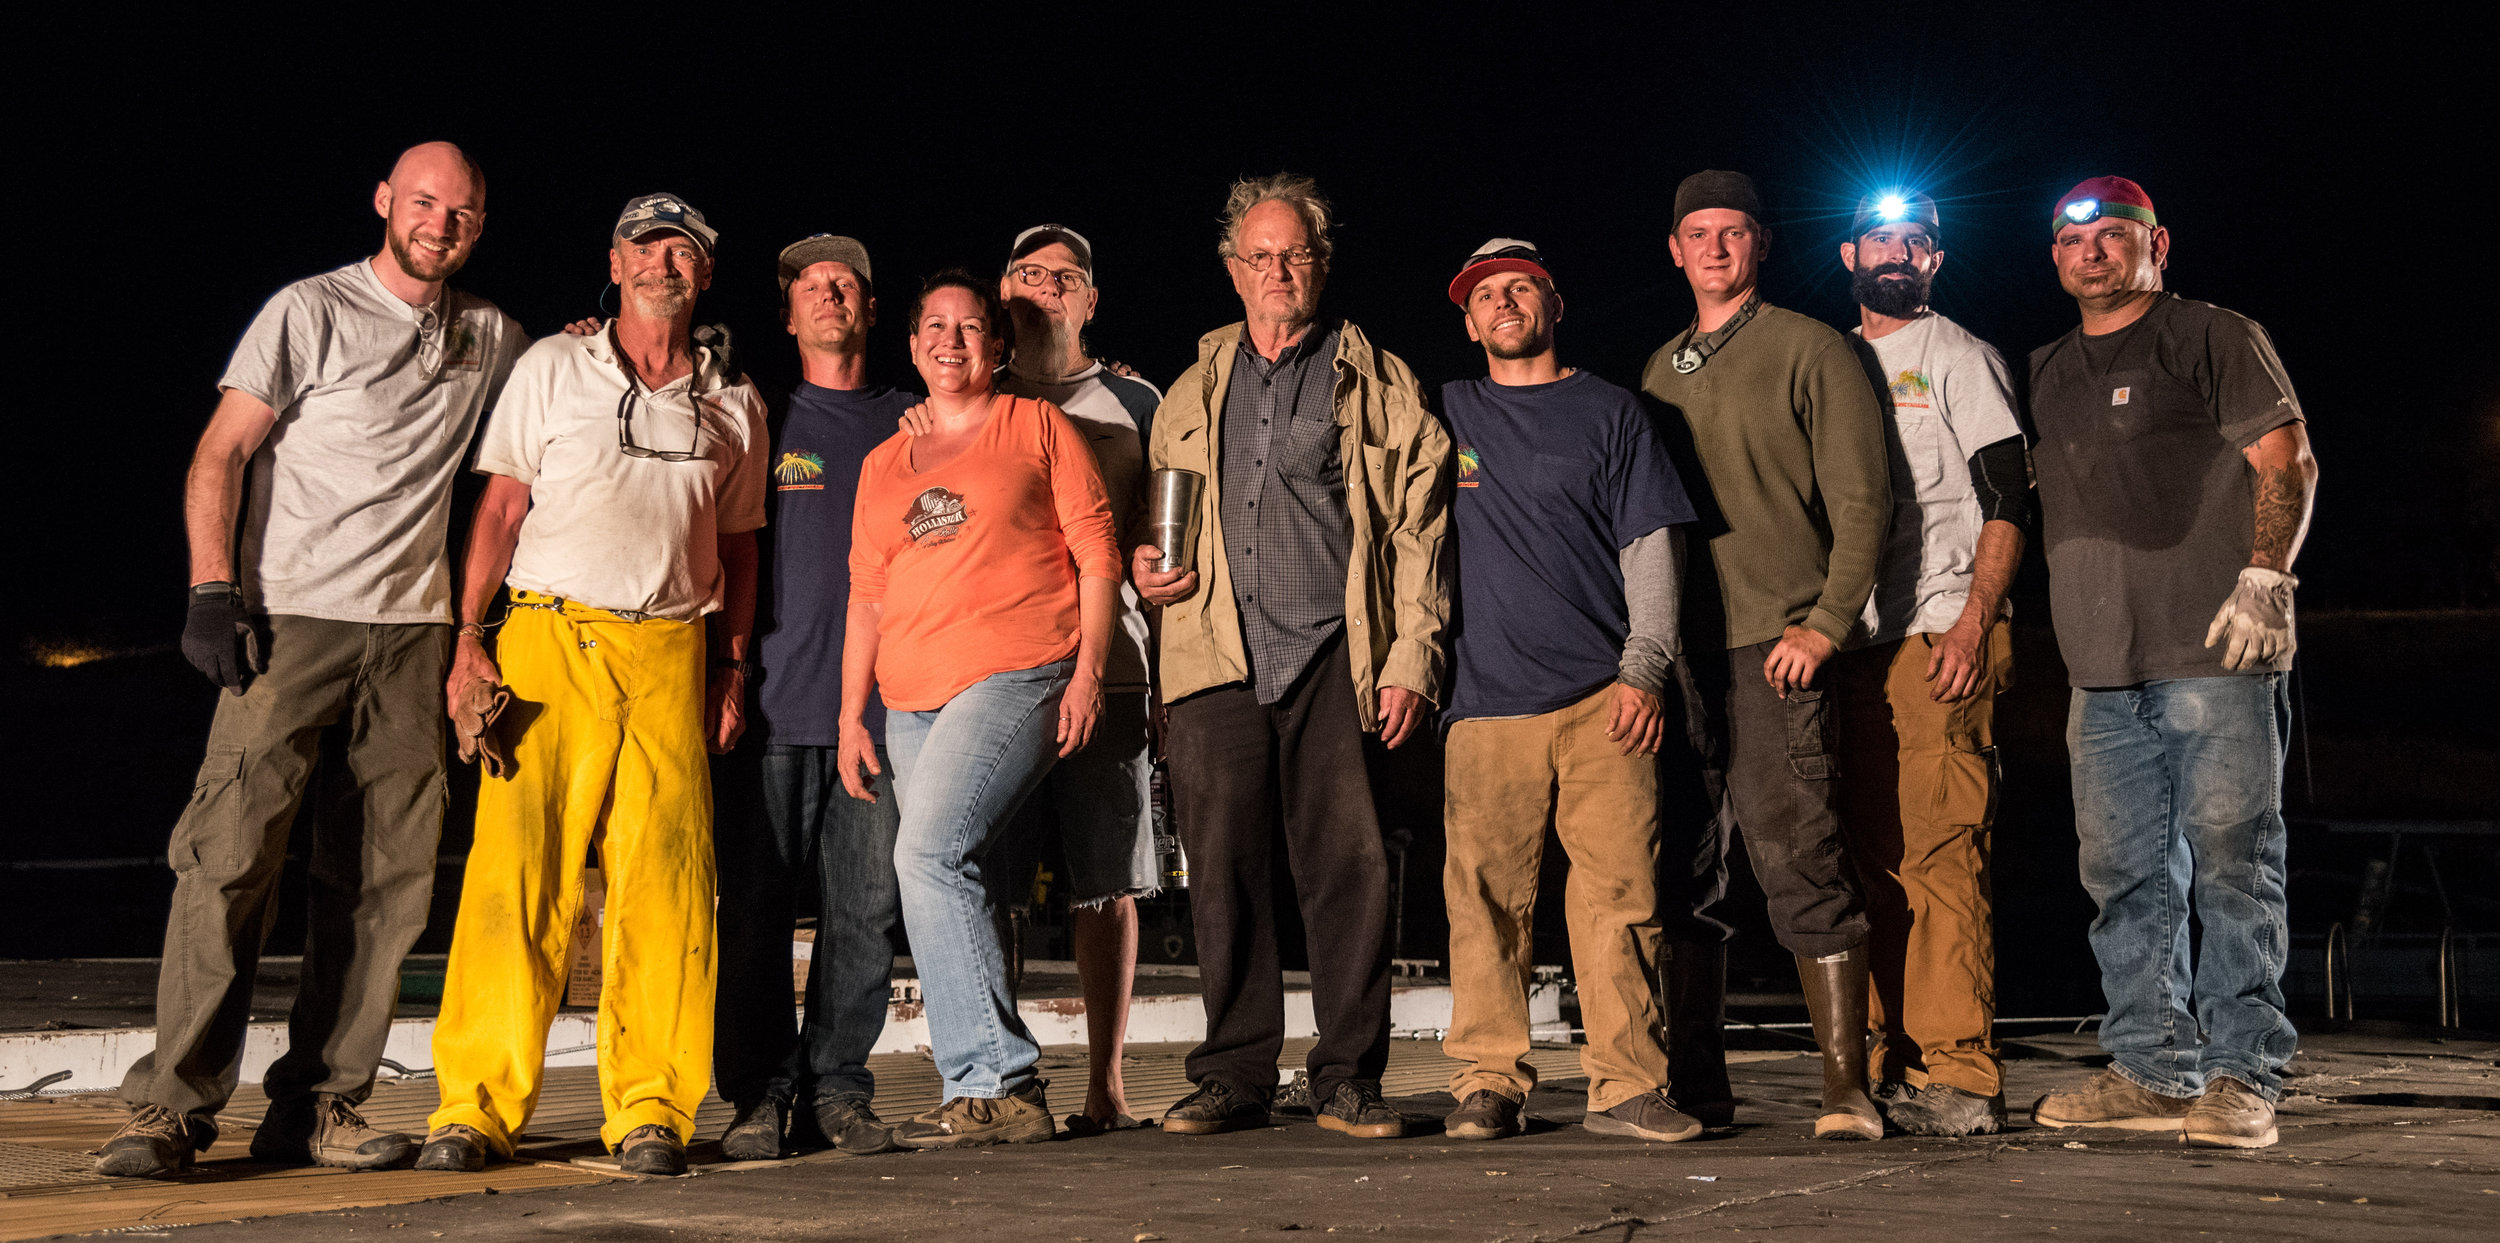 The crew and our crazy scientist leader Jeph—Don't let that face fool you, he's really a nice guy haha.